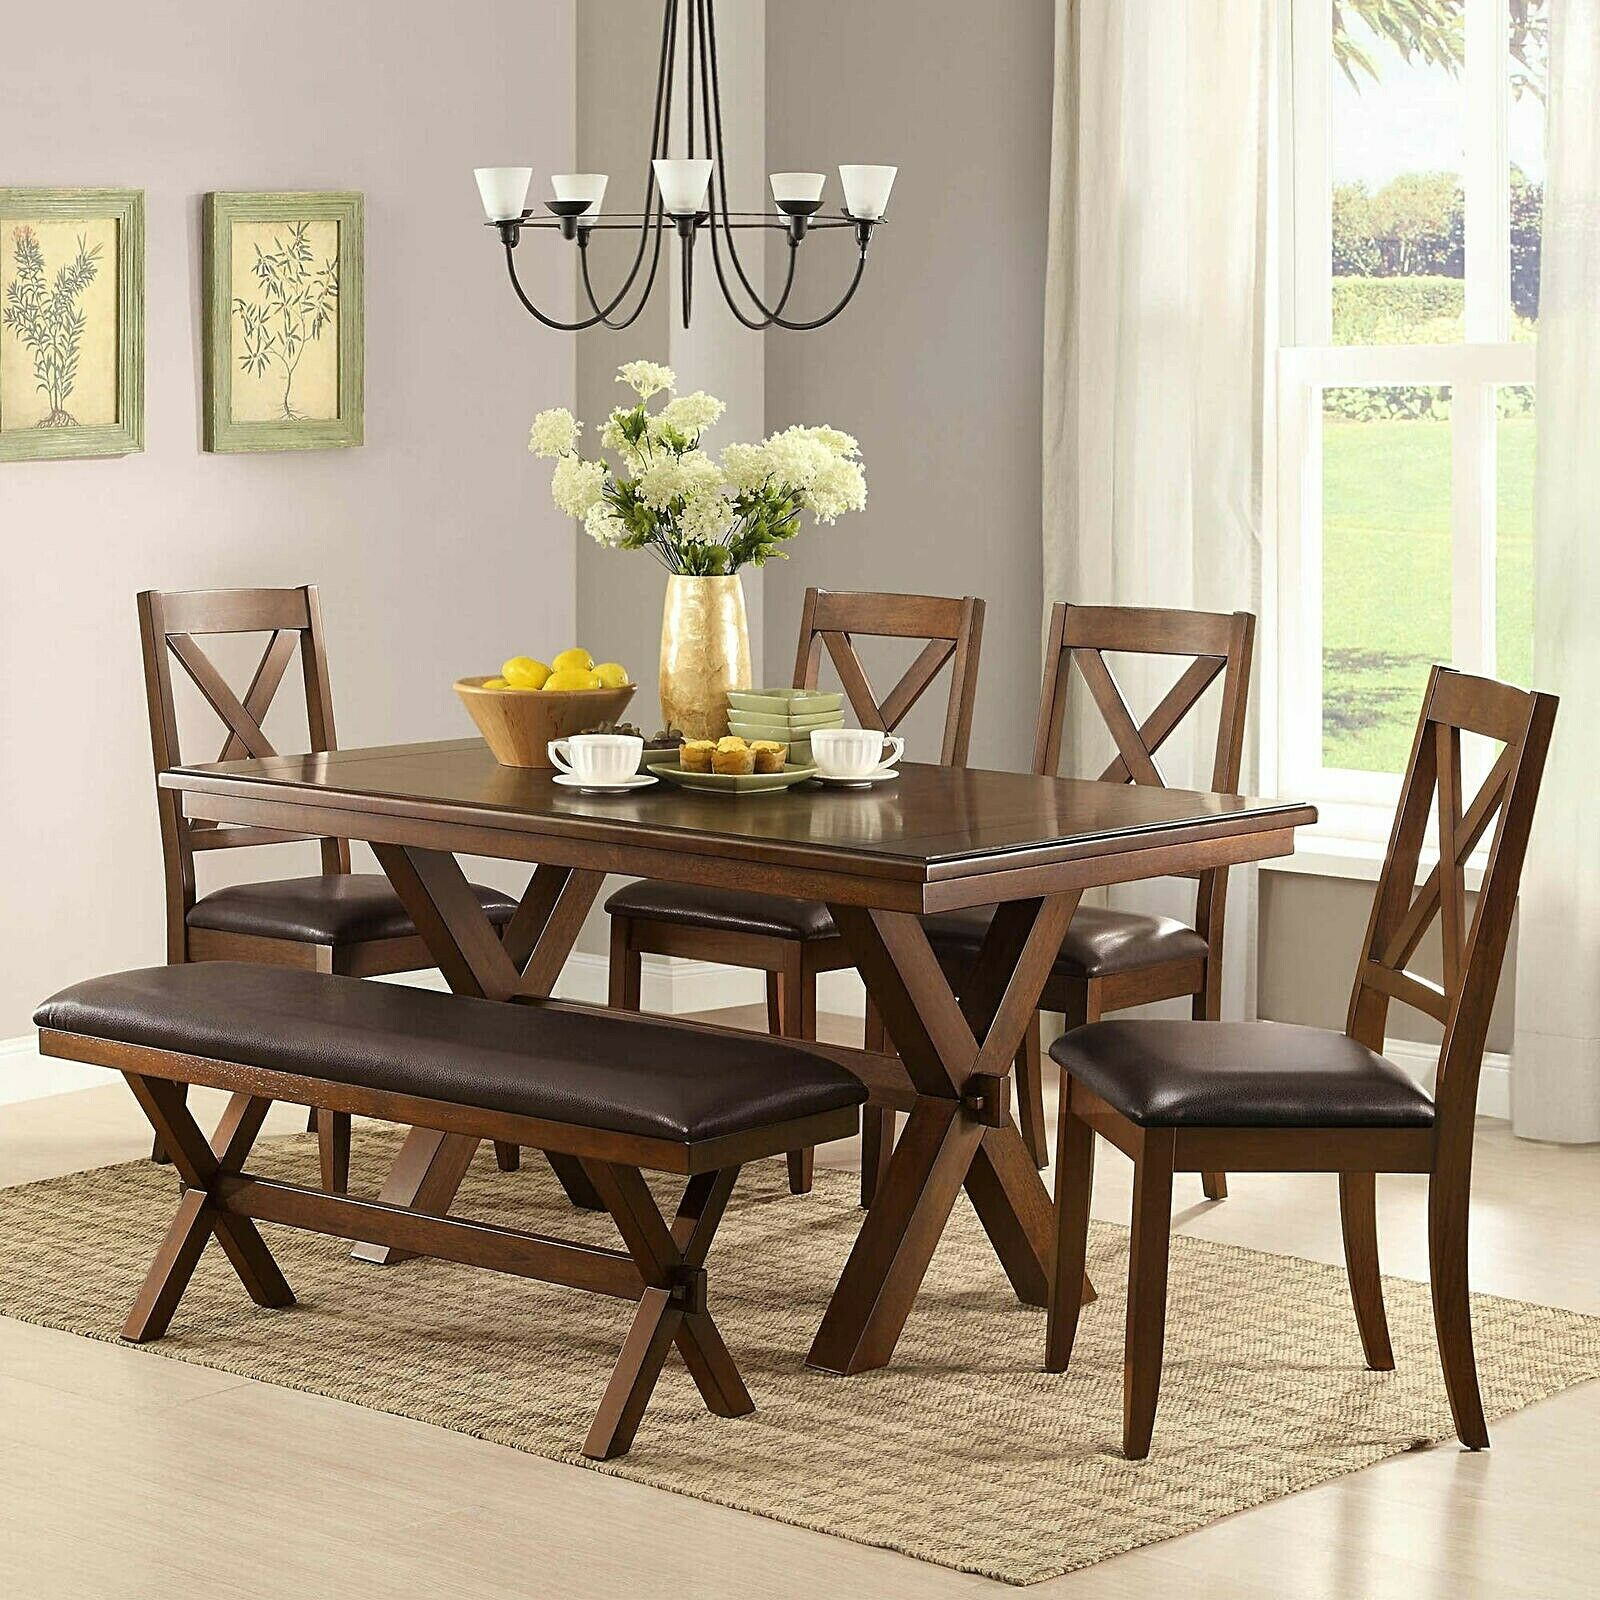 Rustic 6 Pc Dining Set Table Chairs Bench Padded Wood Brown Farmhouse  Kitchen